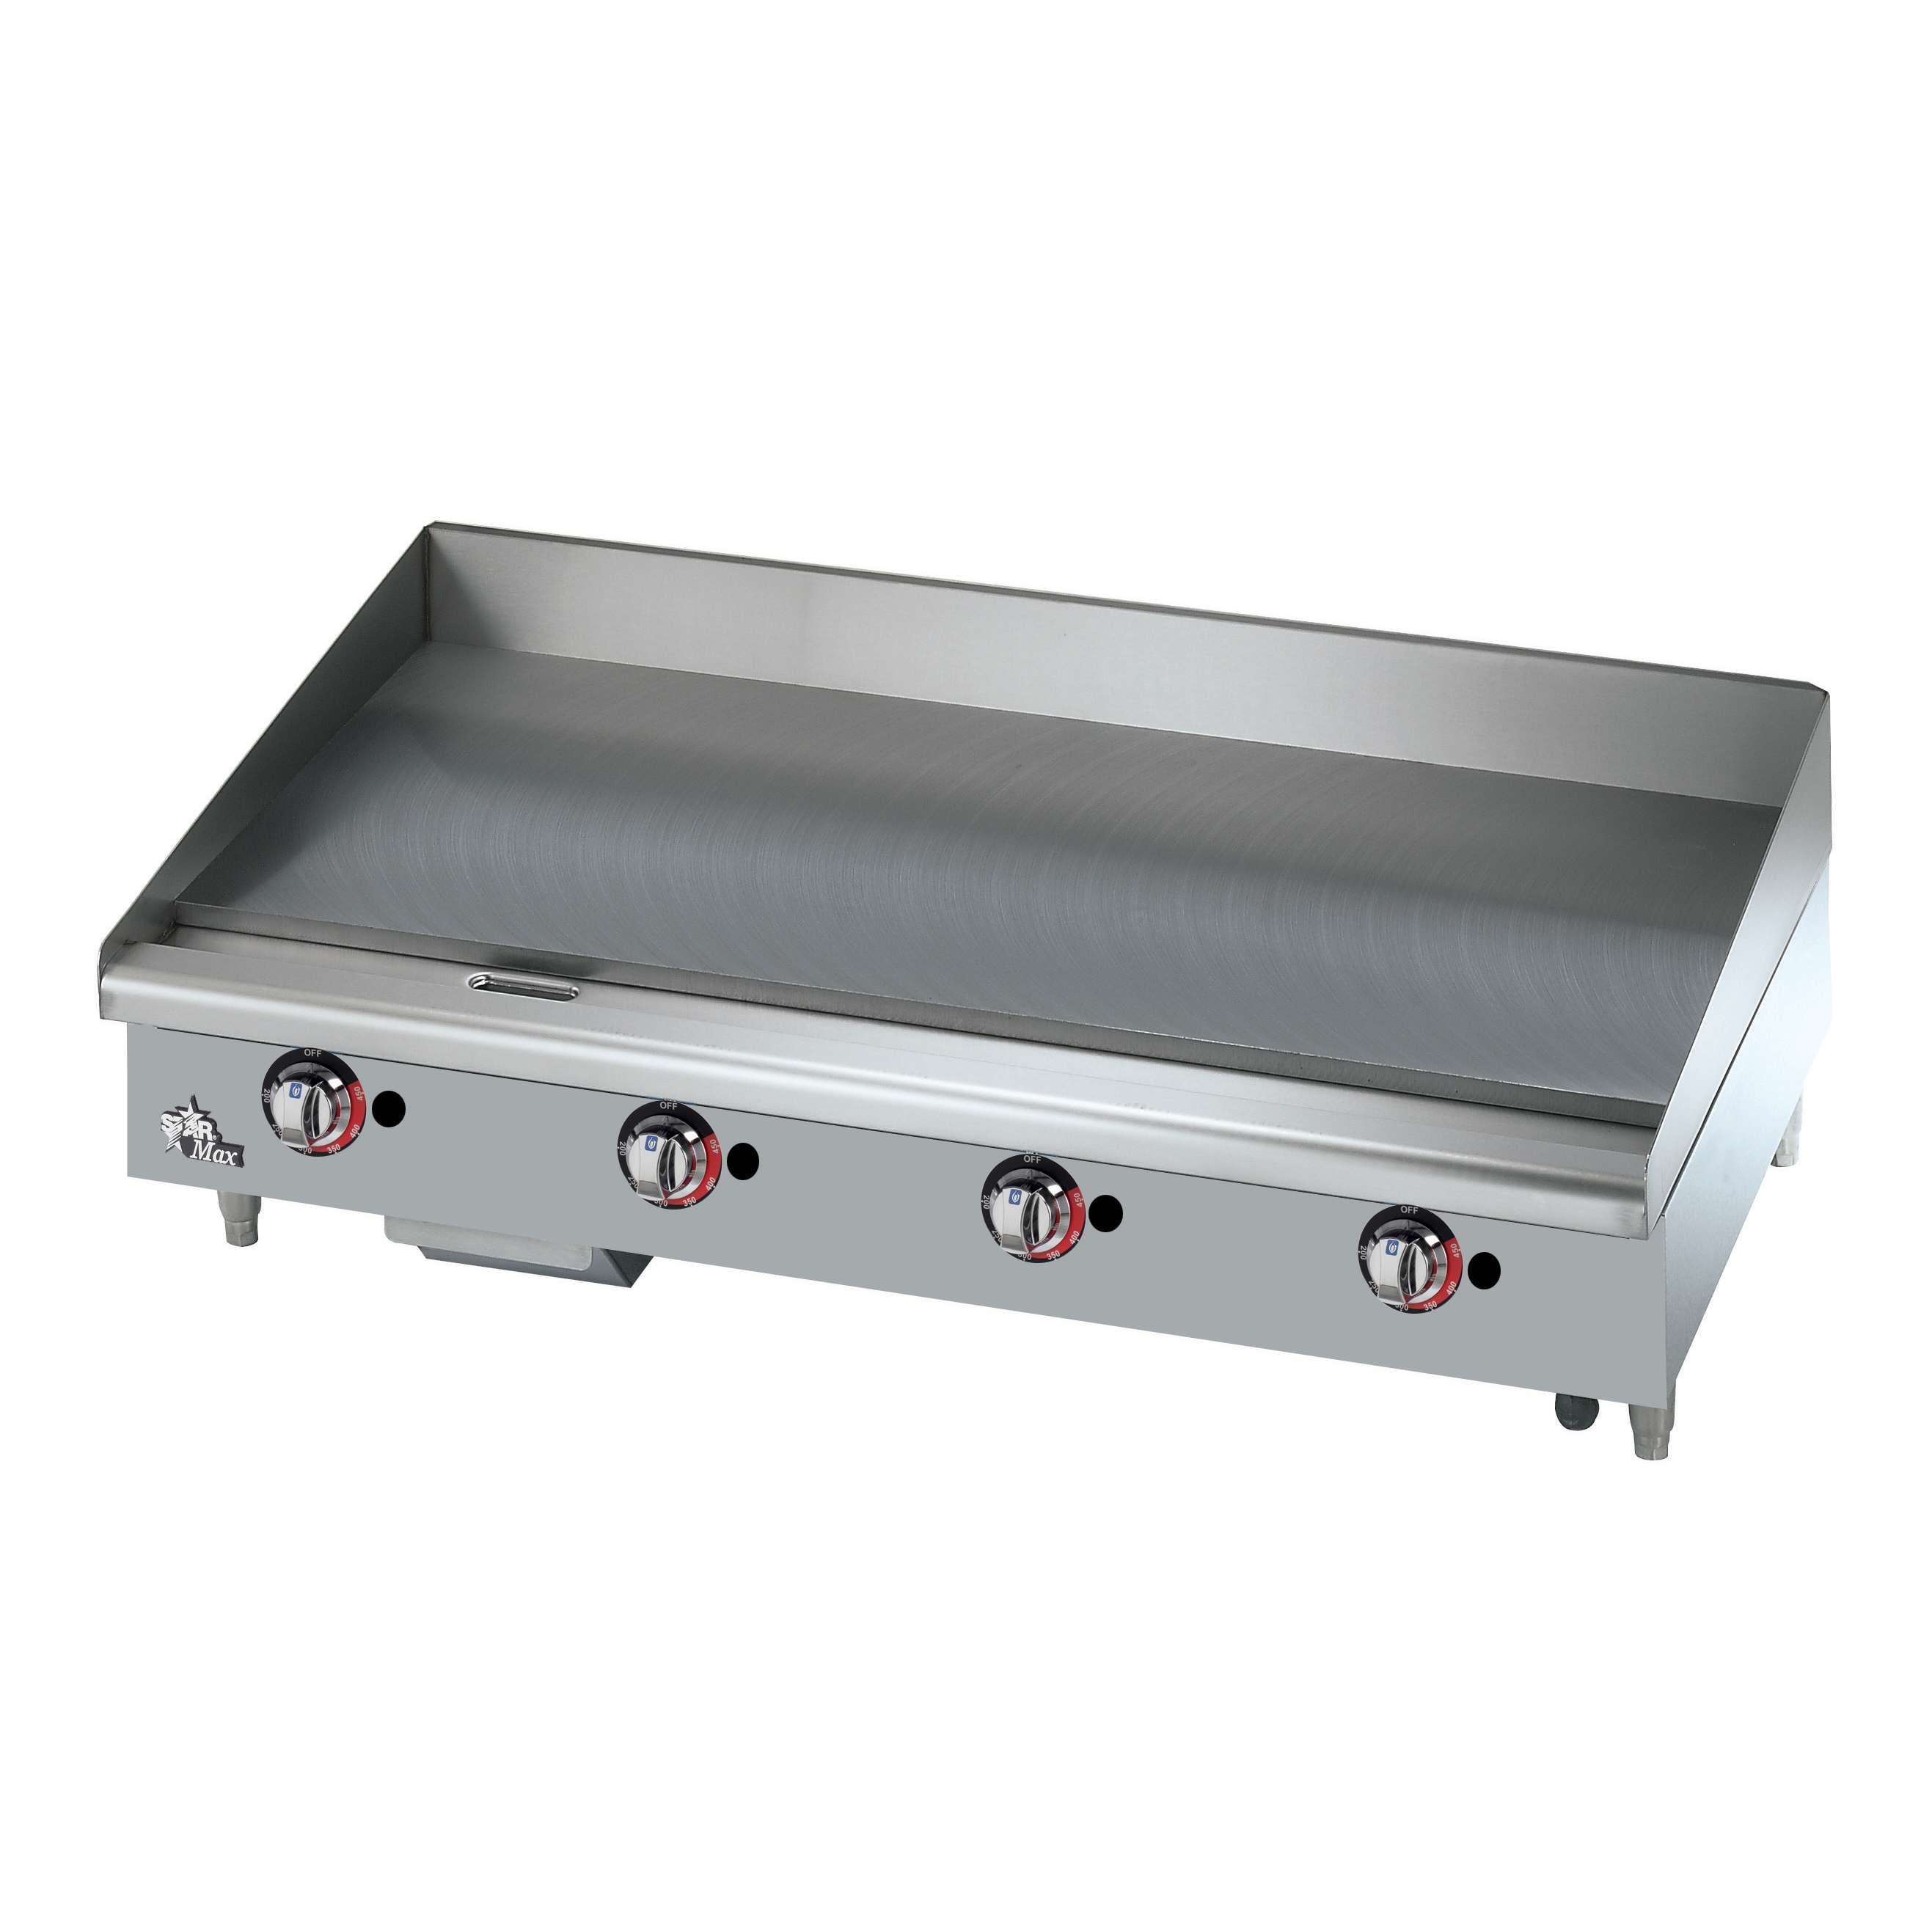 Star 648TSPF griddle, gas, countertop